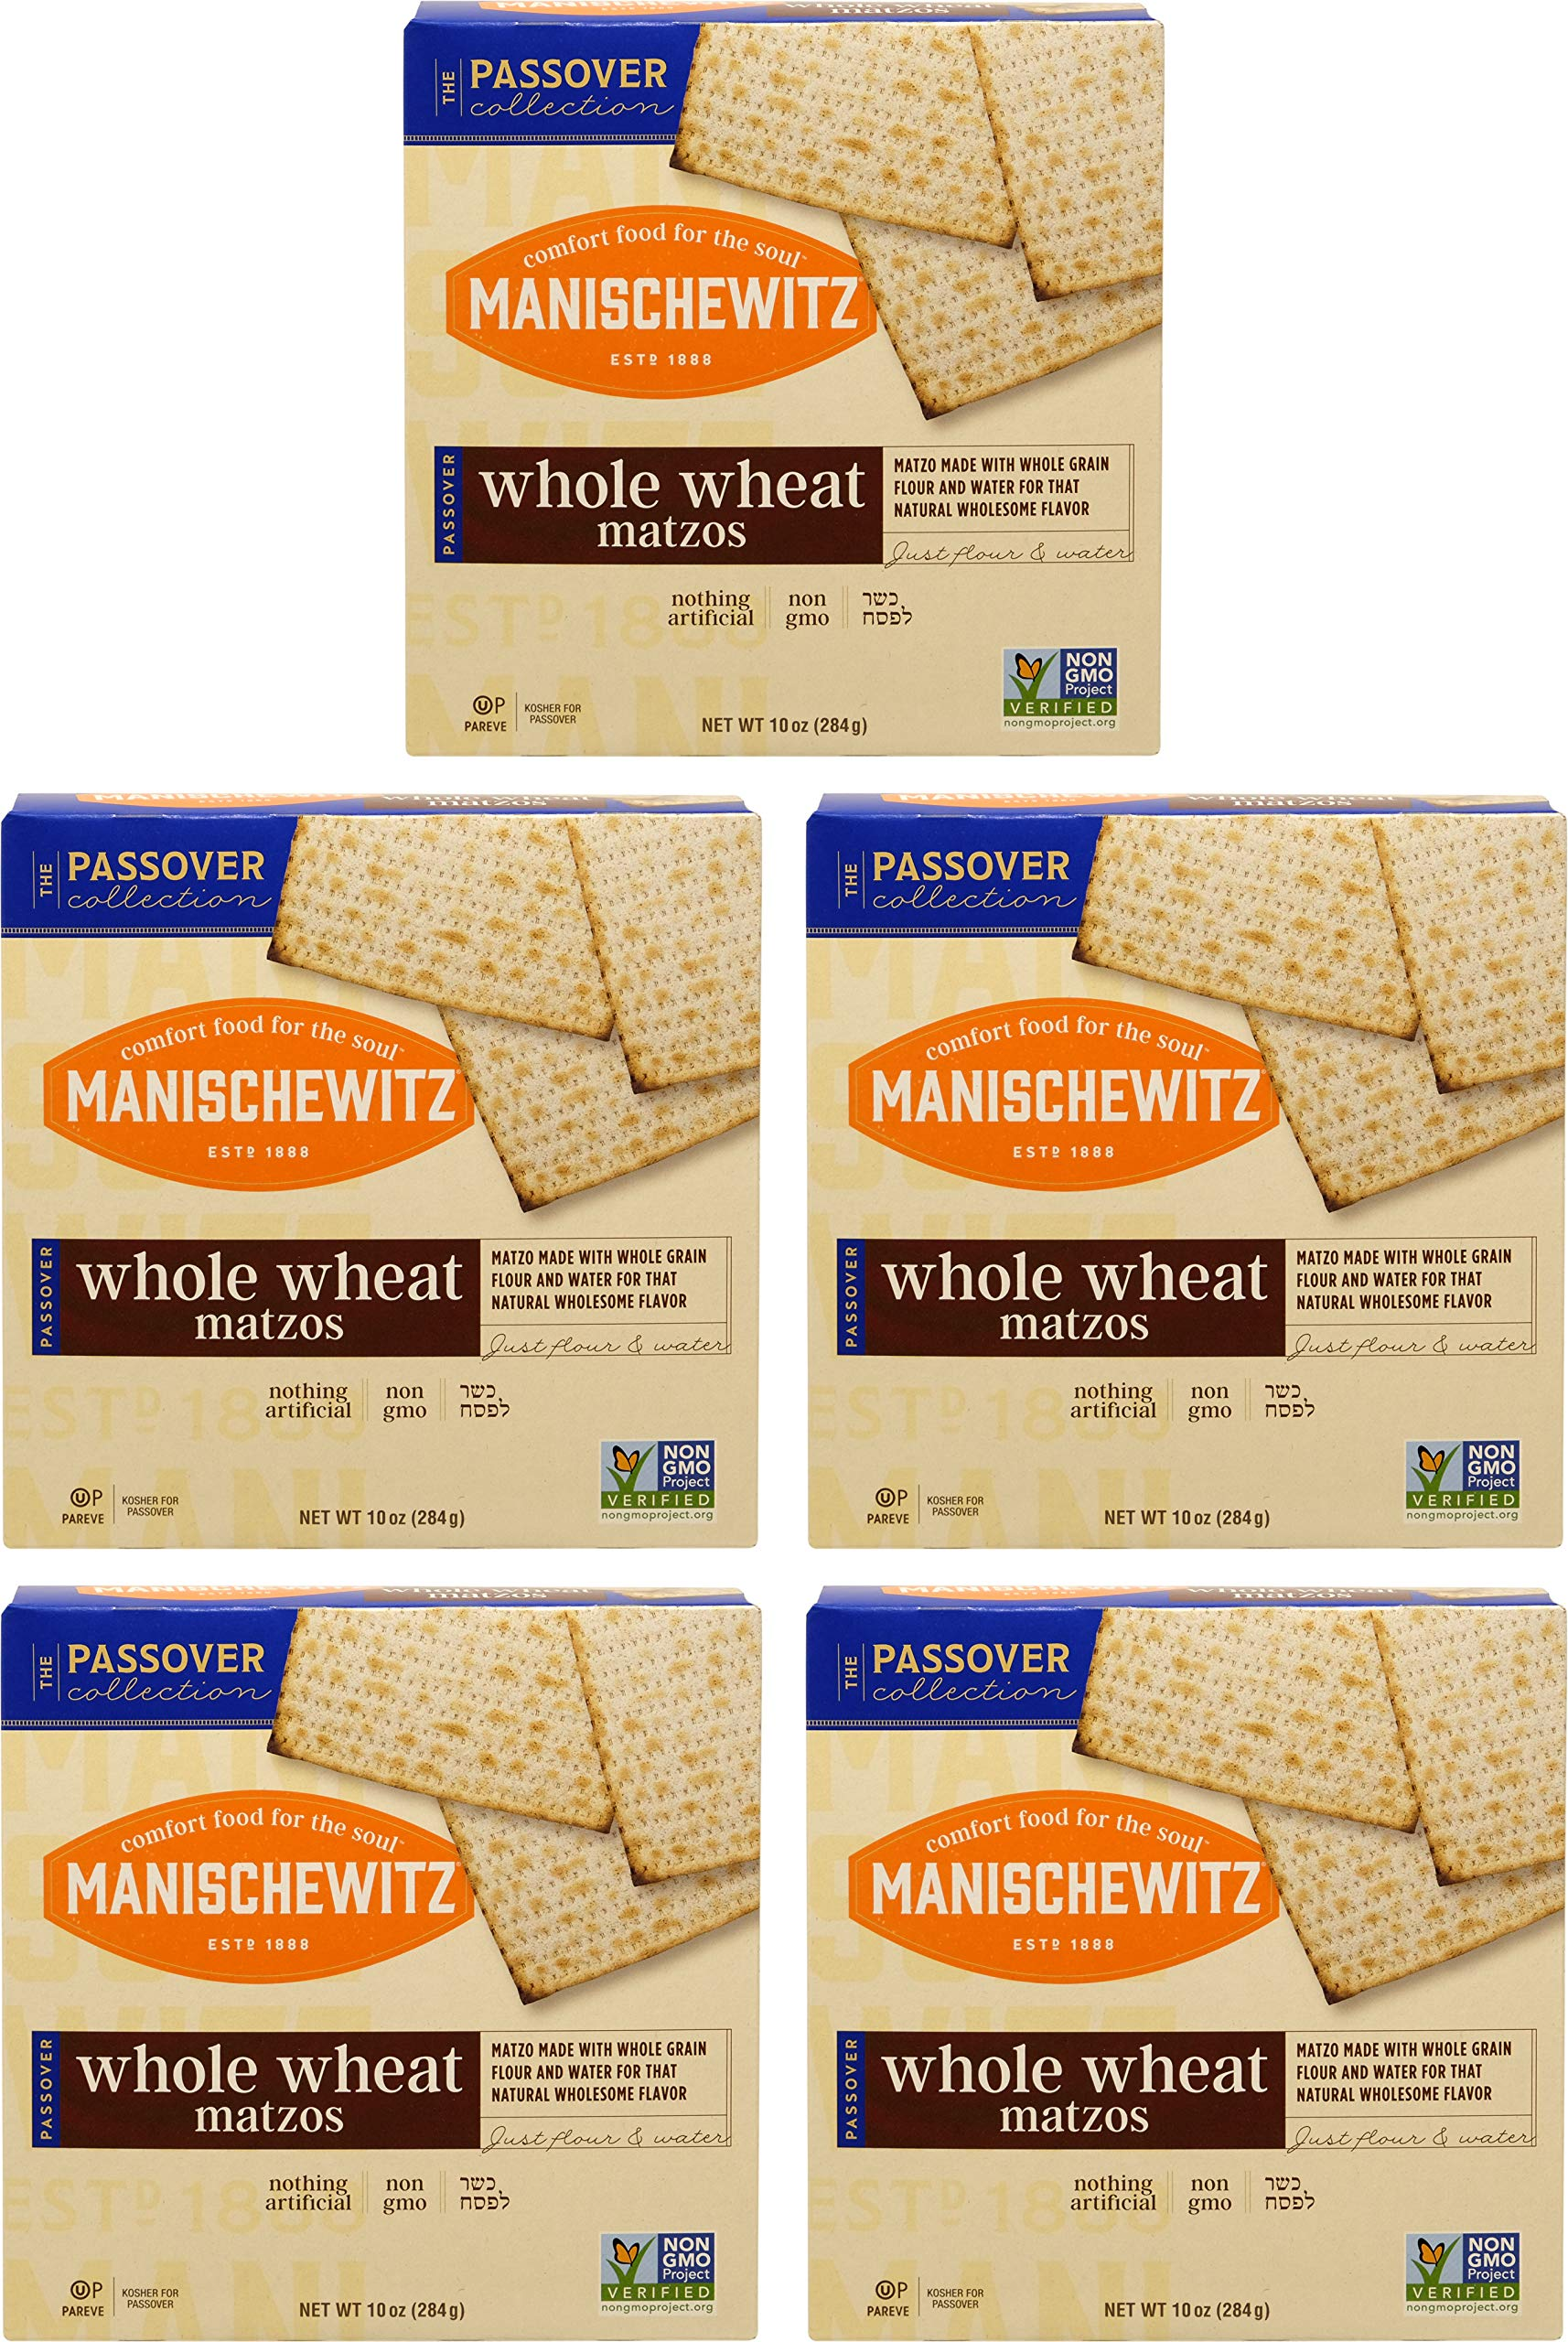 Manischewitz Whole Wheat Matzo, Kosher For Passover, 10 Ounce Box (Pack of 5, Total of 50 Oz)